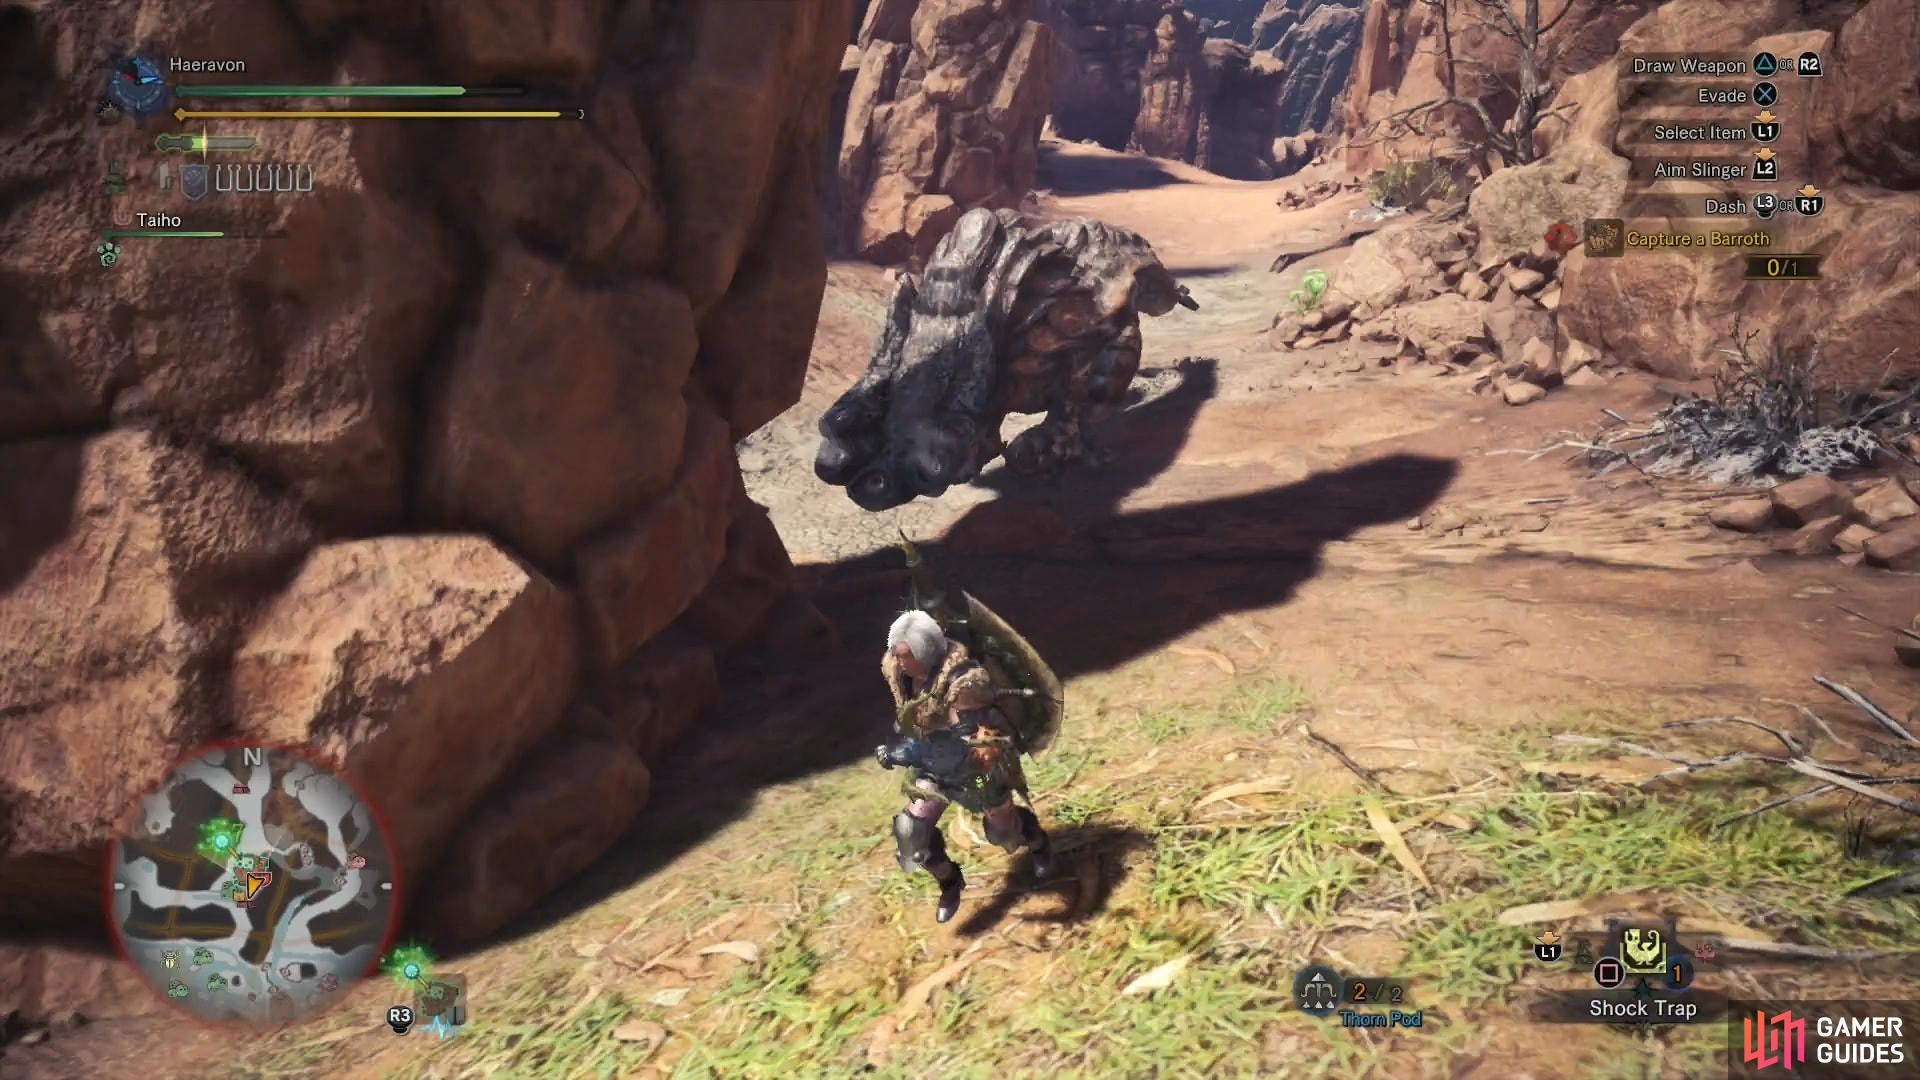 If you can provoke it into charge you near a spire, the Barroth will smack into the obstacle and stun itself